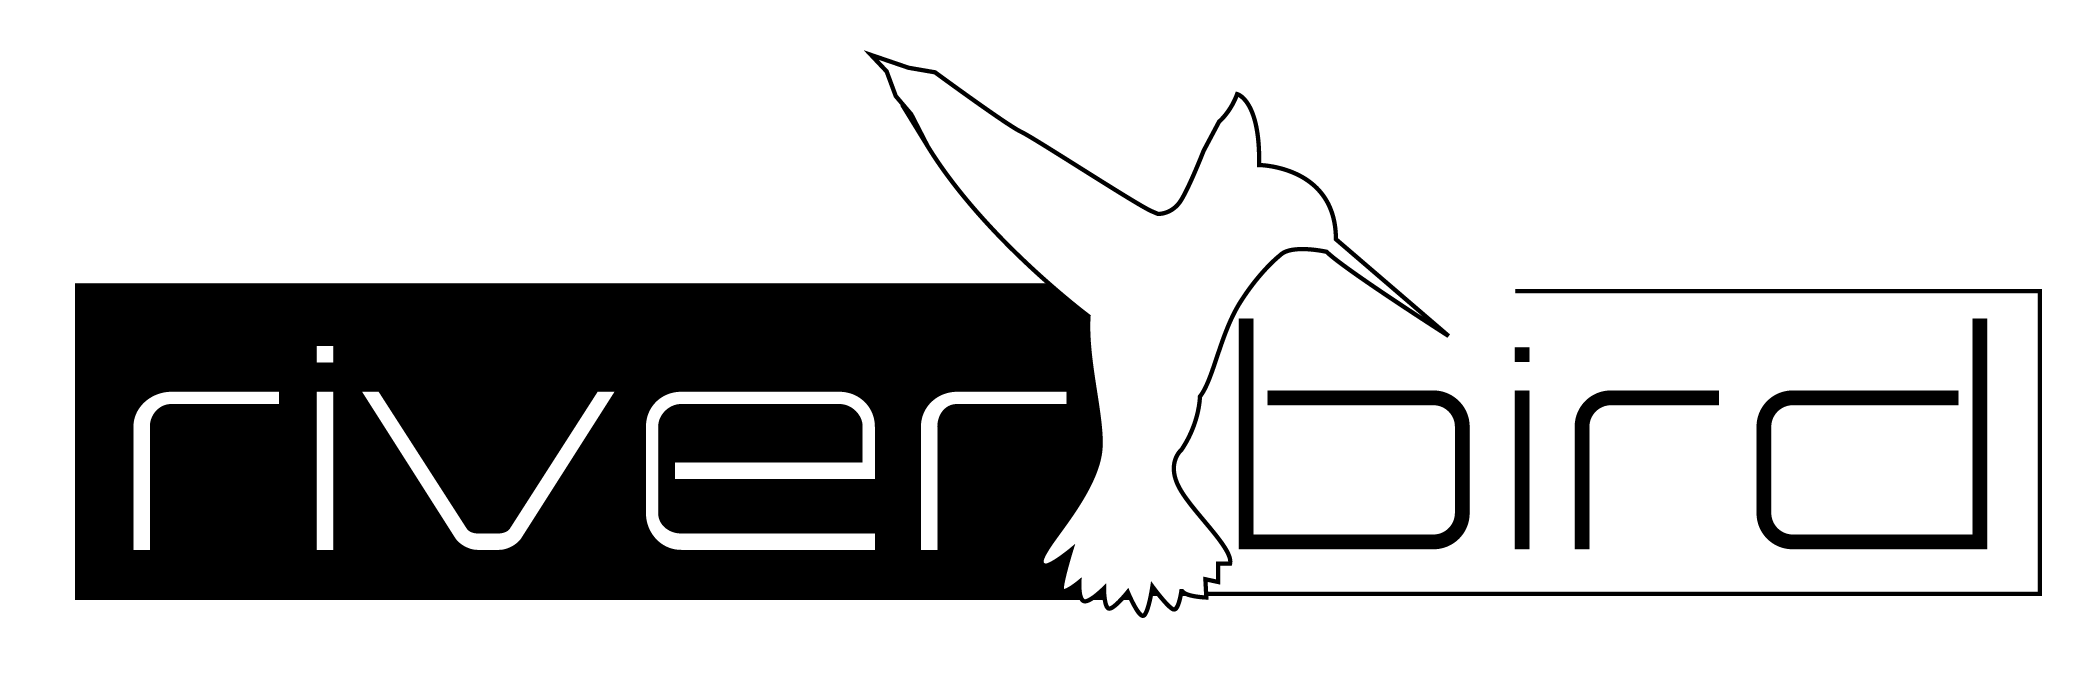 Riverbird GmbH